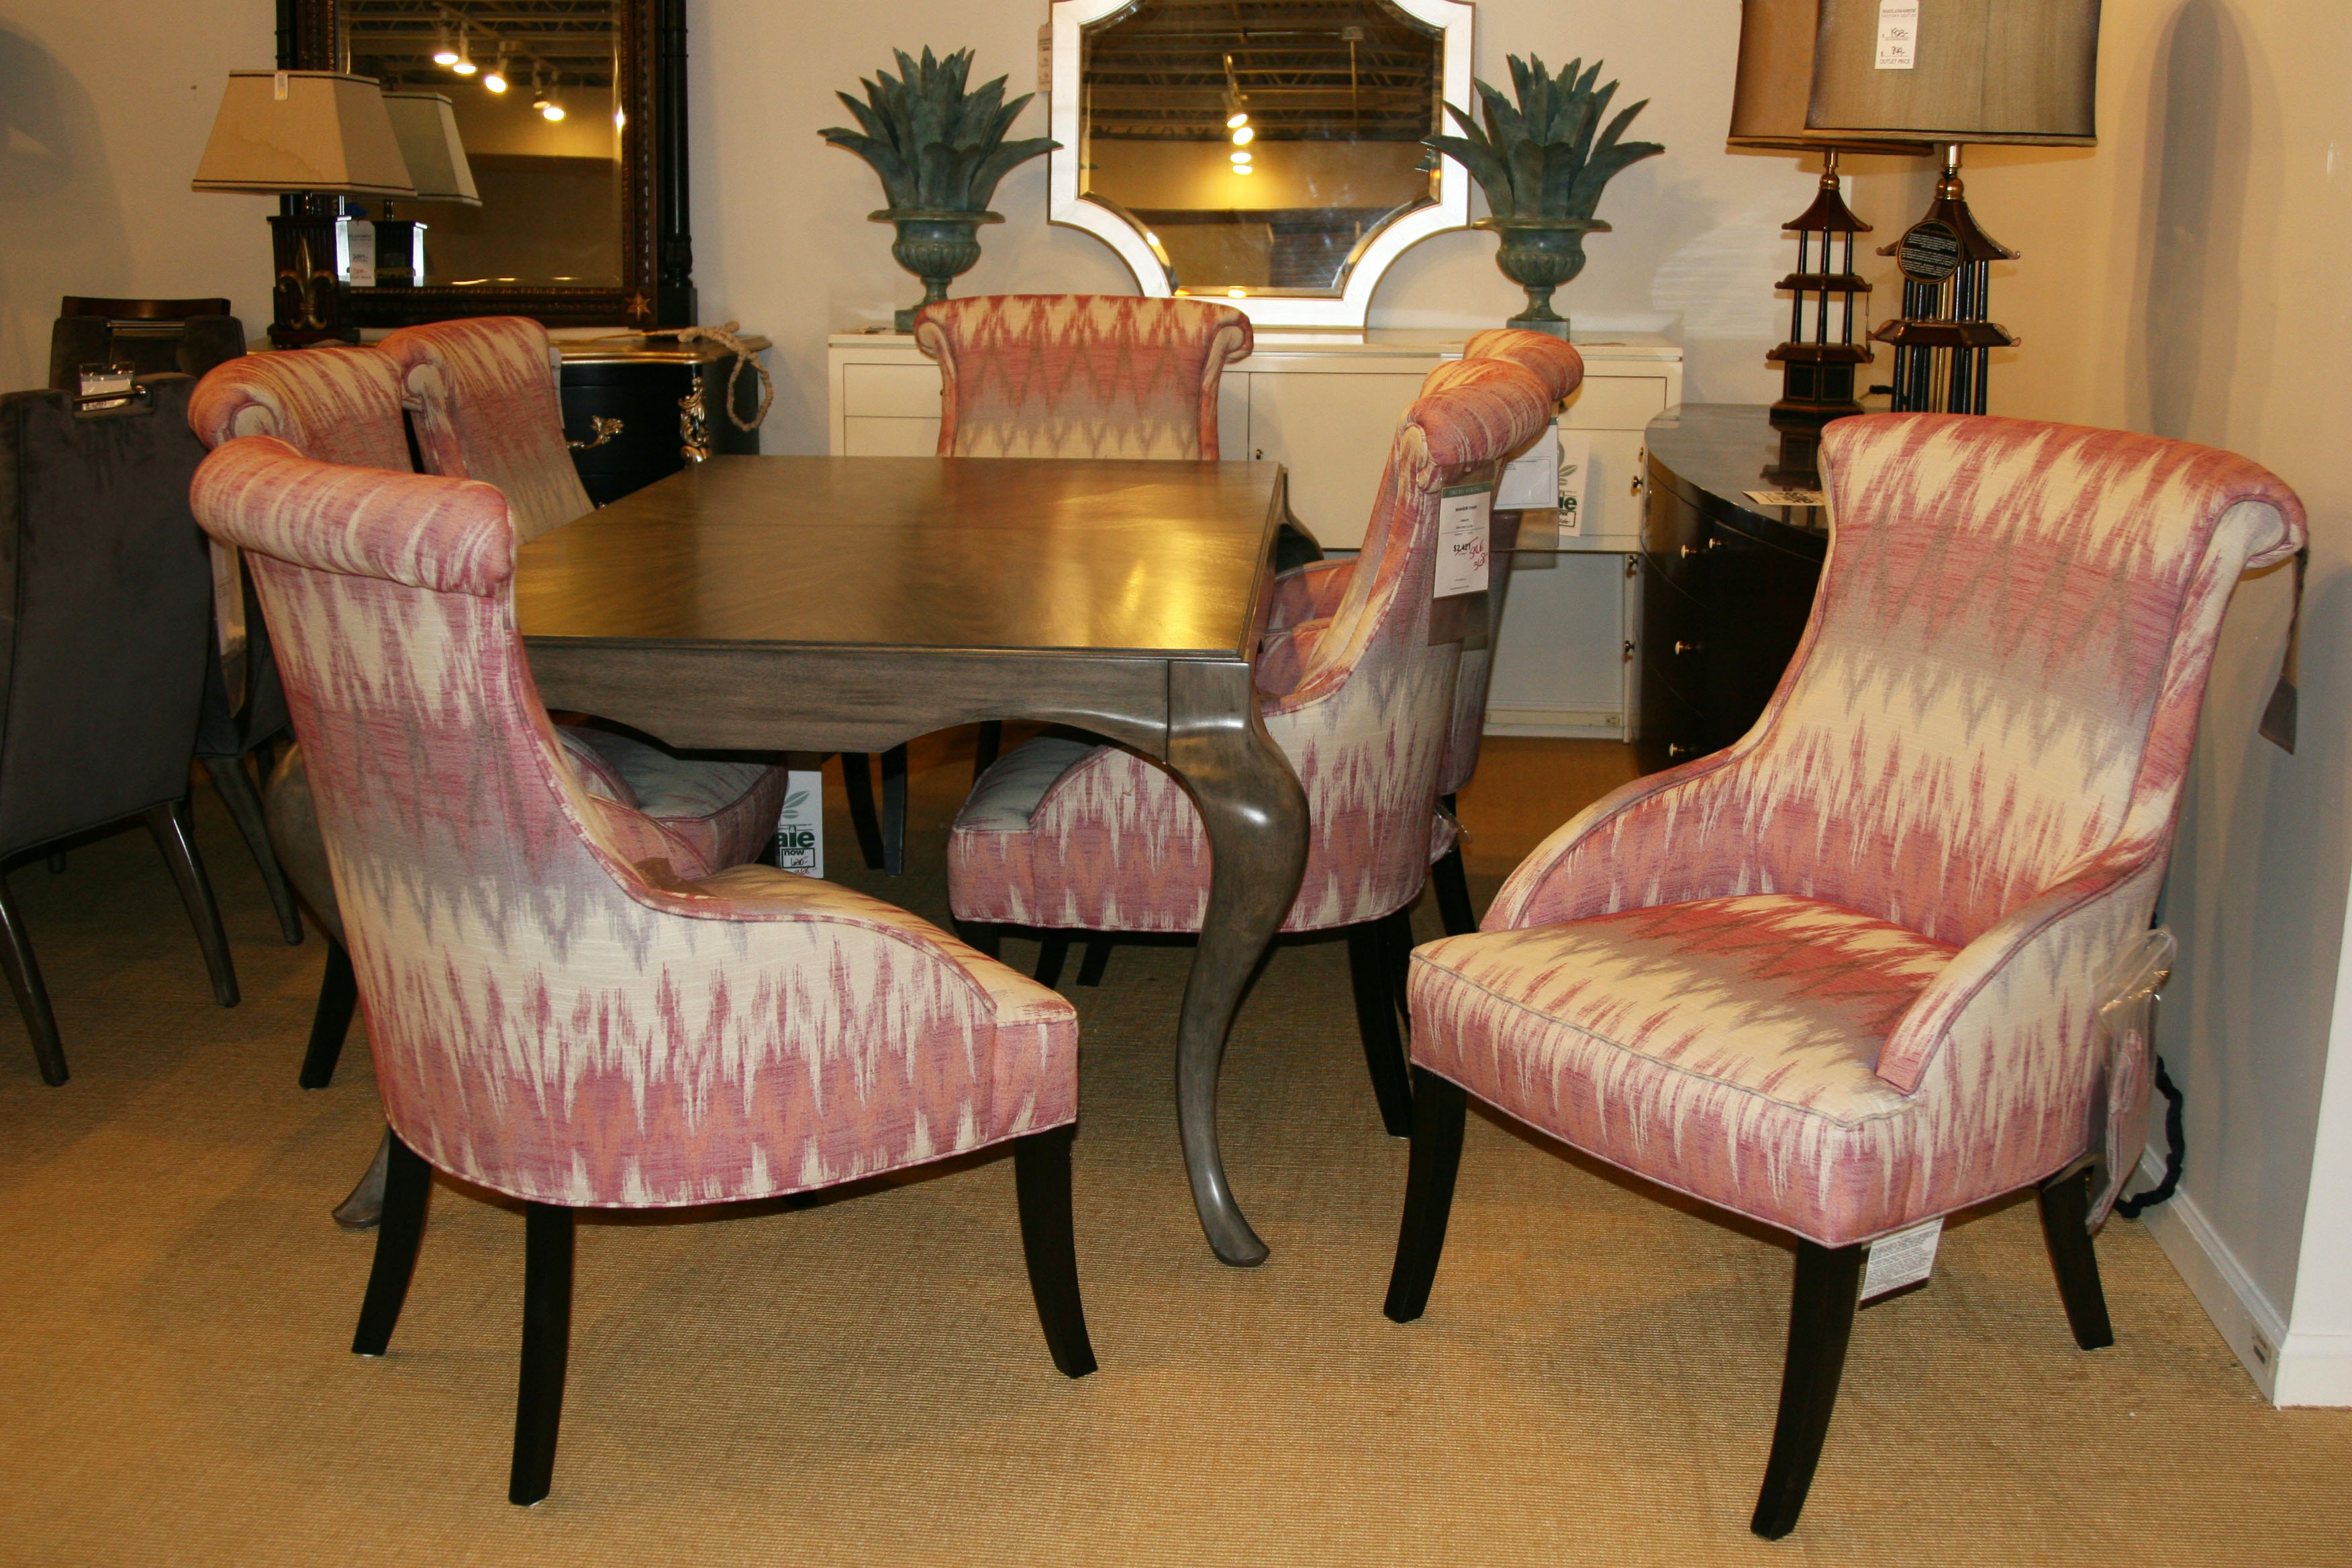 dining room chairs | furniture | hickory furniture mart in hickory, nc